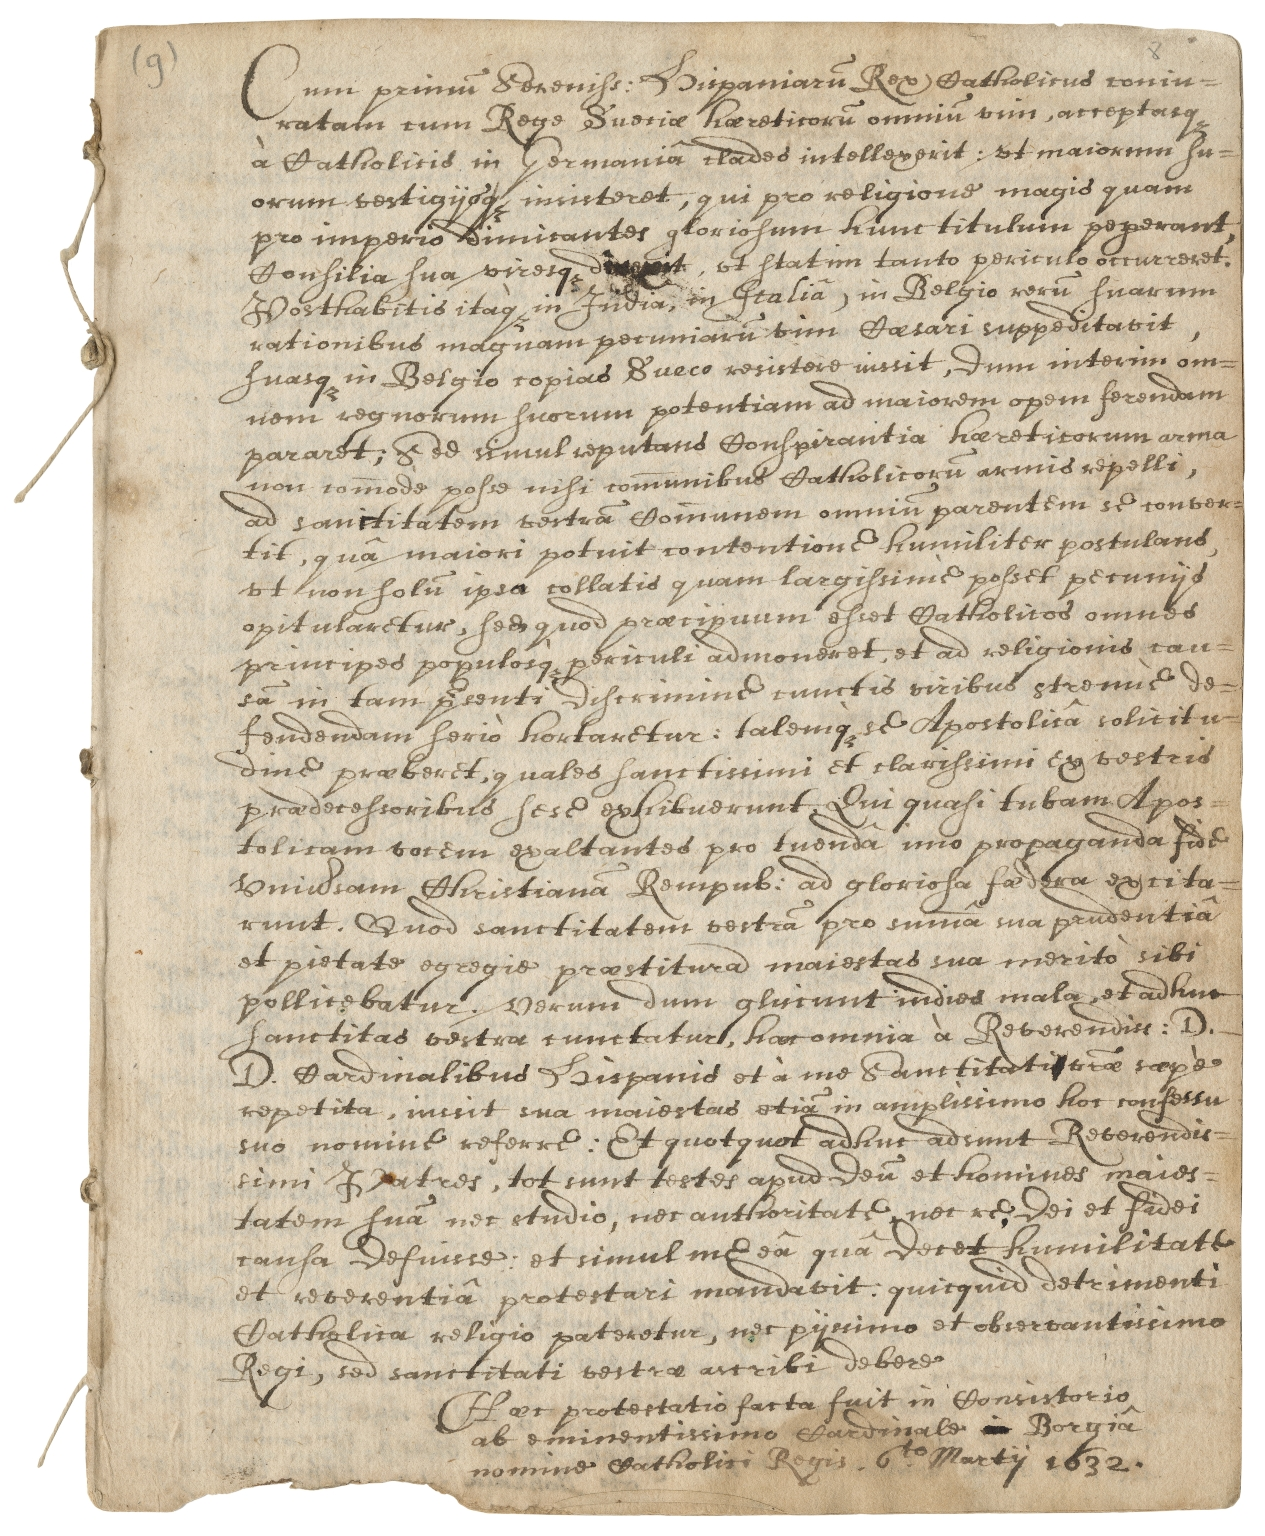 Copy of letter of protest from Gaspar de Borja, Cardinal, to Pope Urban VIII, March 6, 1632